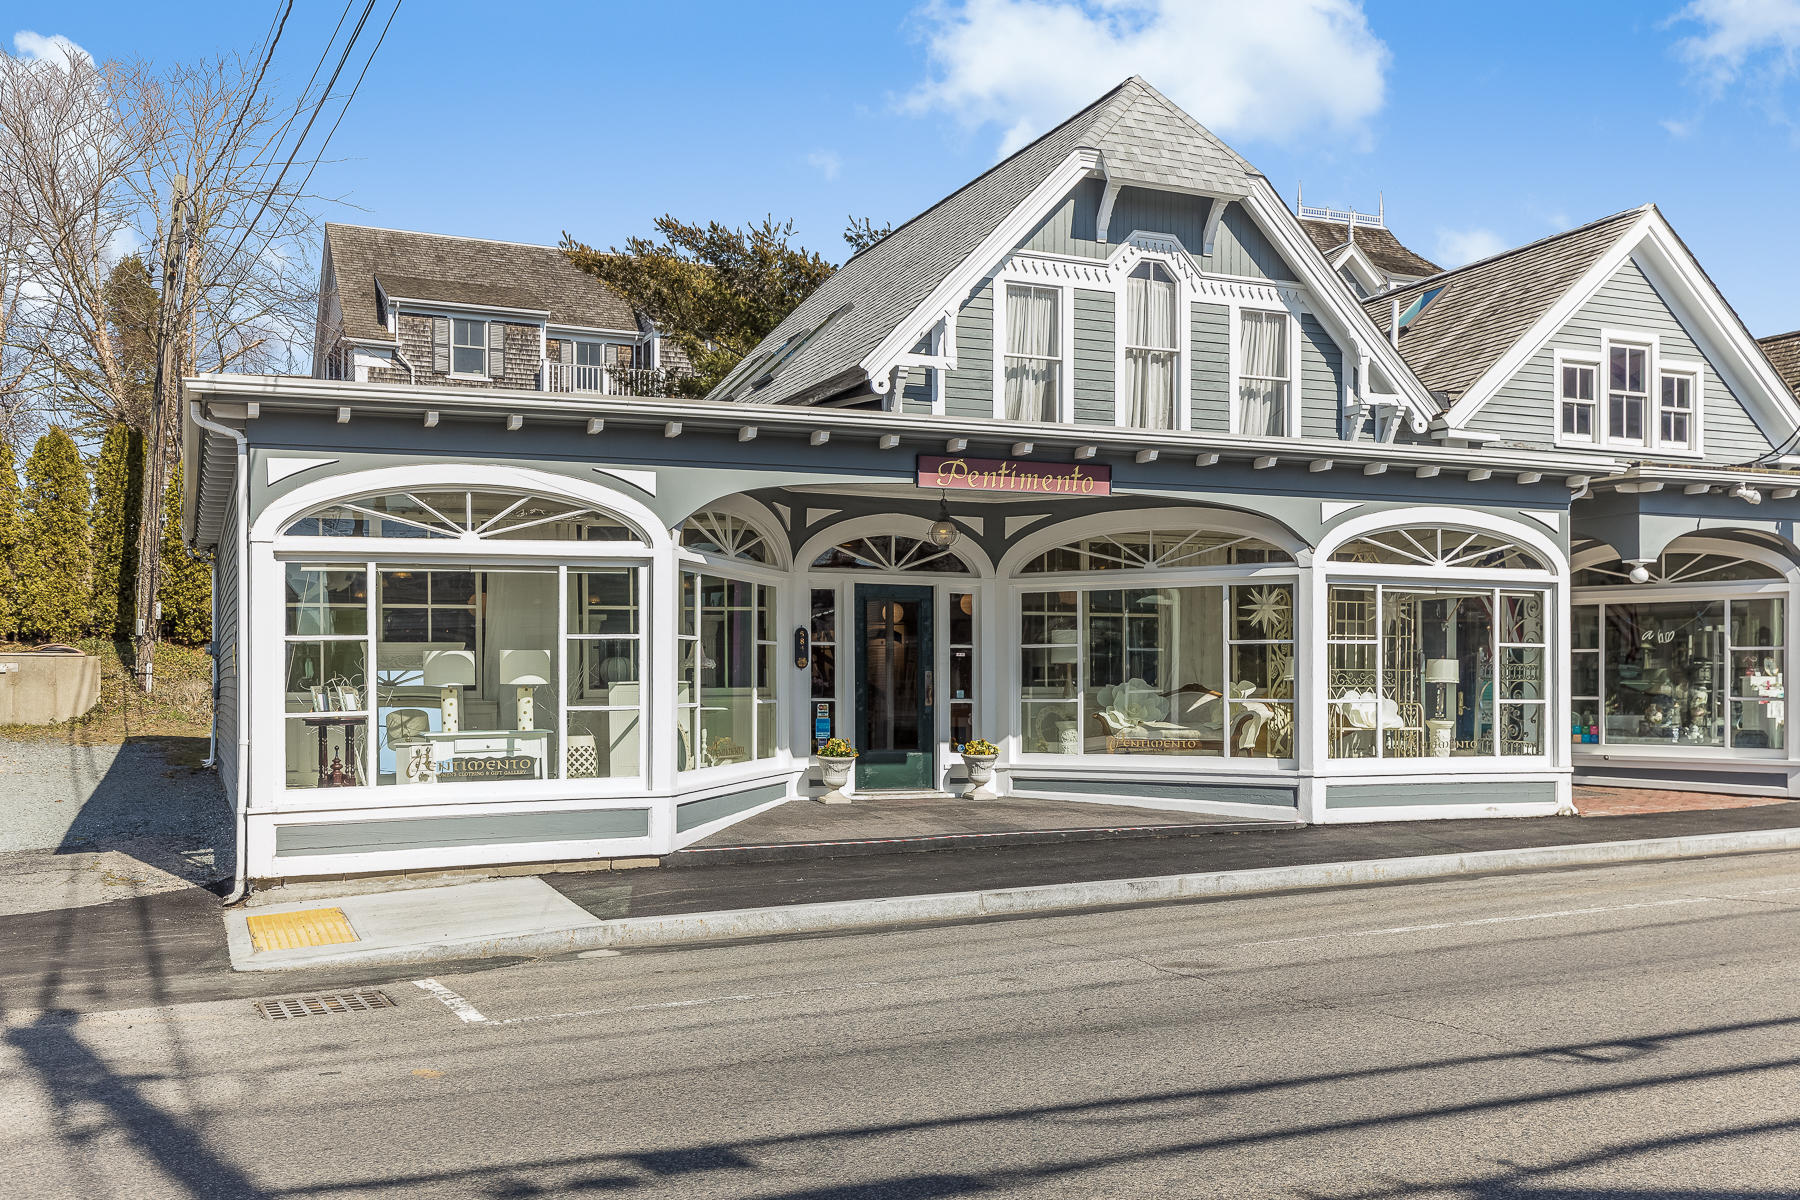 click to view more details 584 Main Street, Chatham, MA 02633